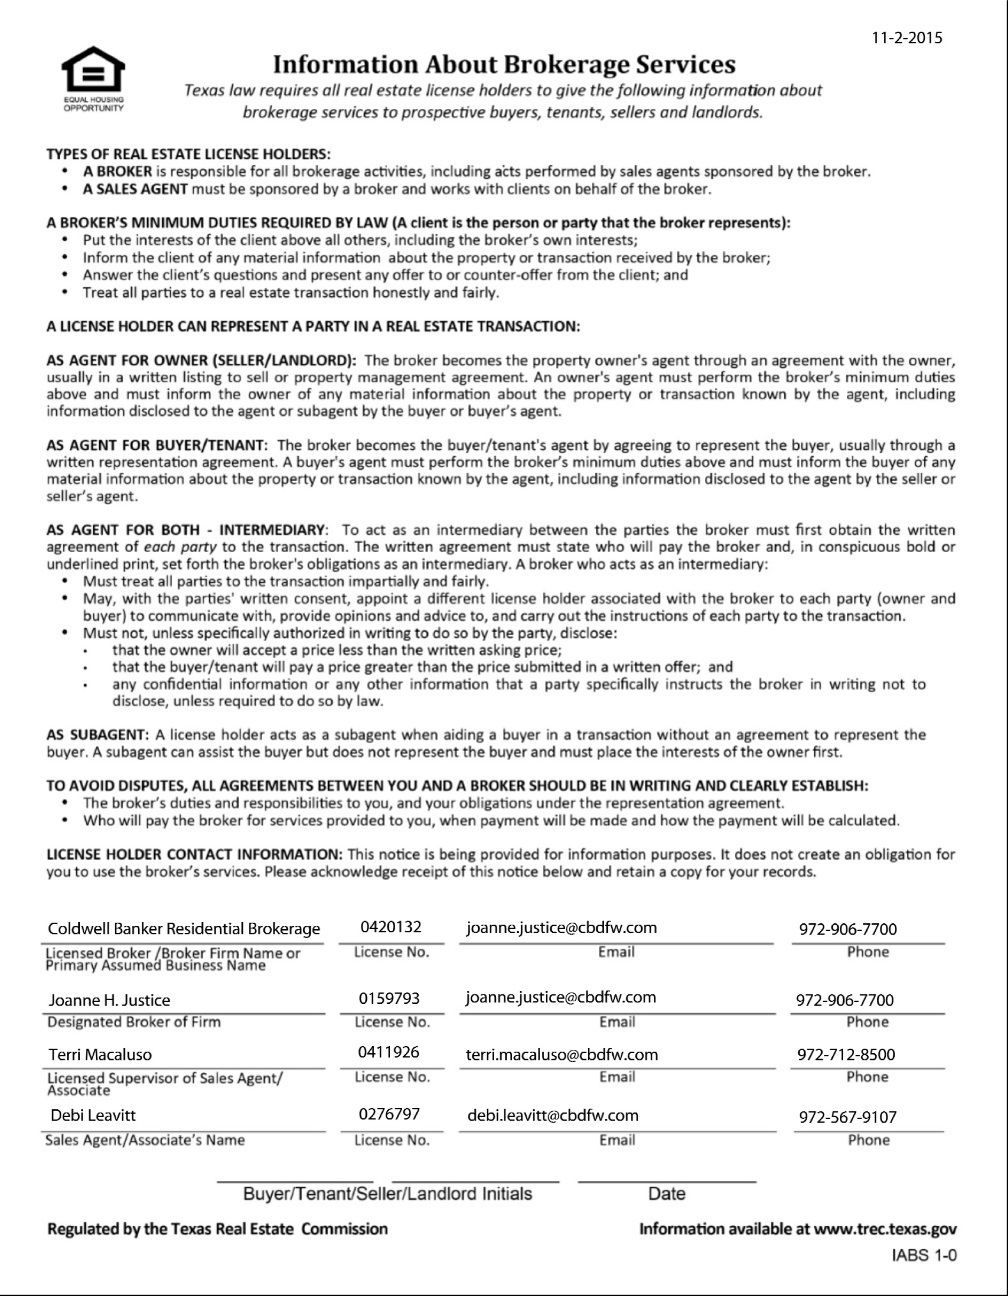 Texas Real Estate Commission (TREC) Information About Brokerage Services Form 2